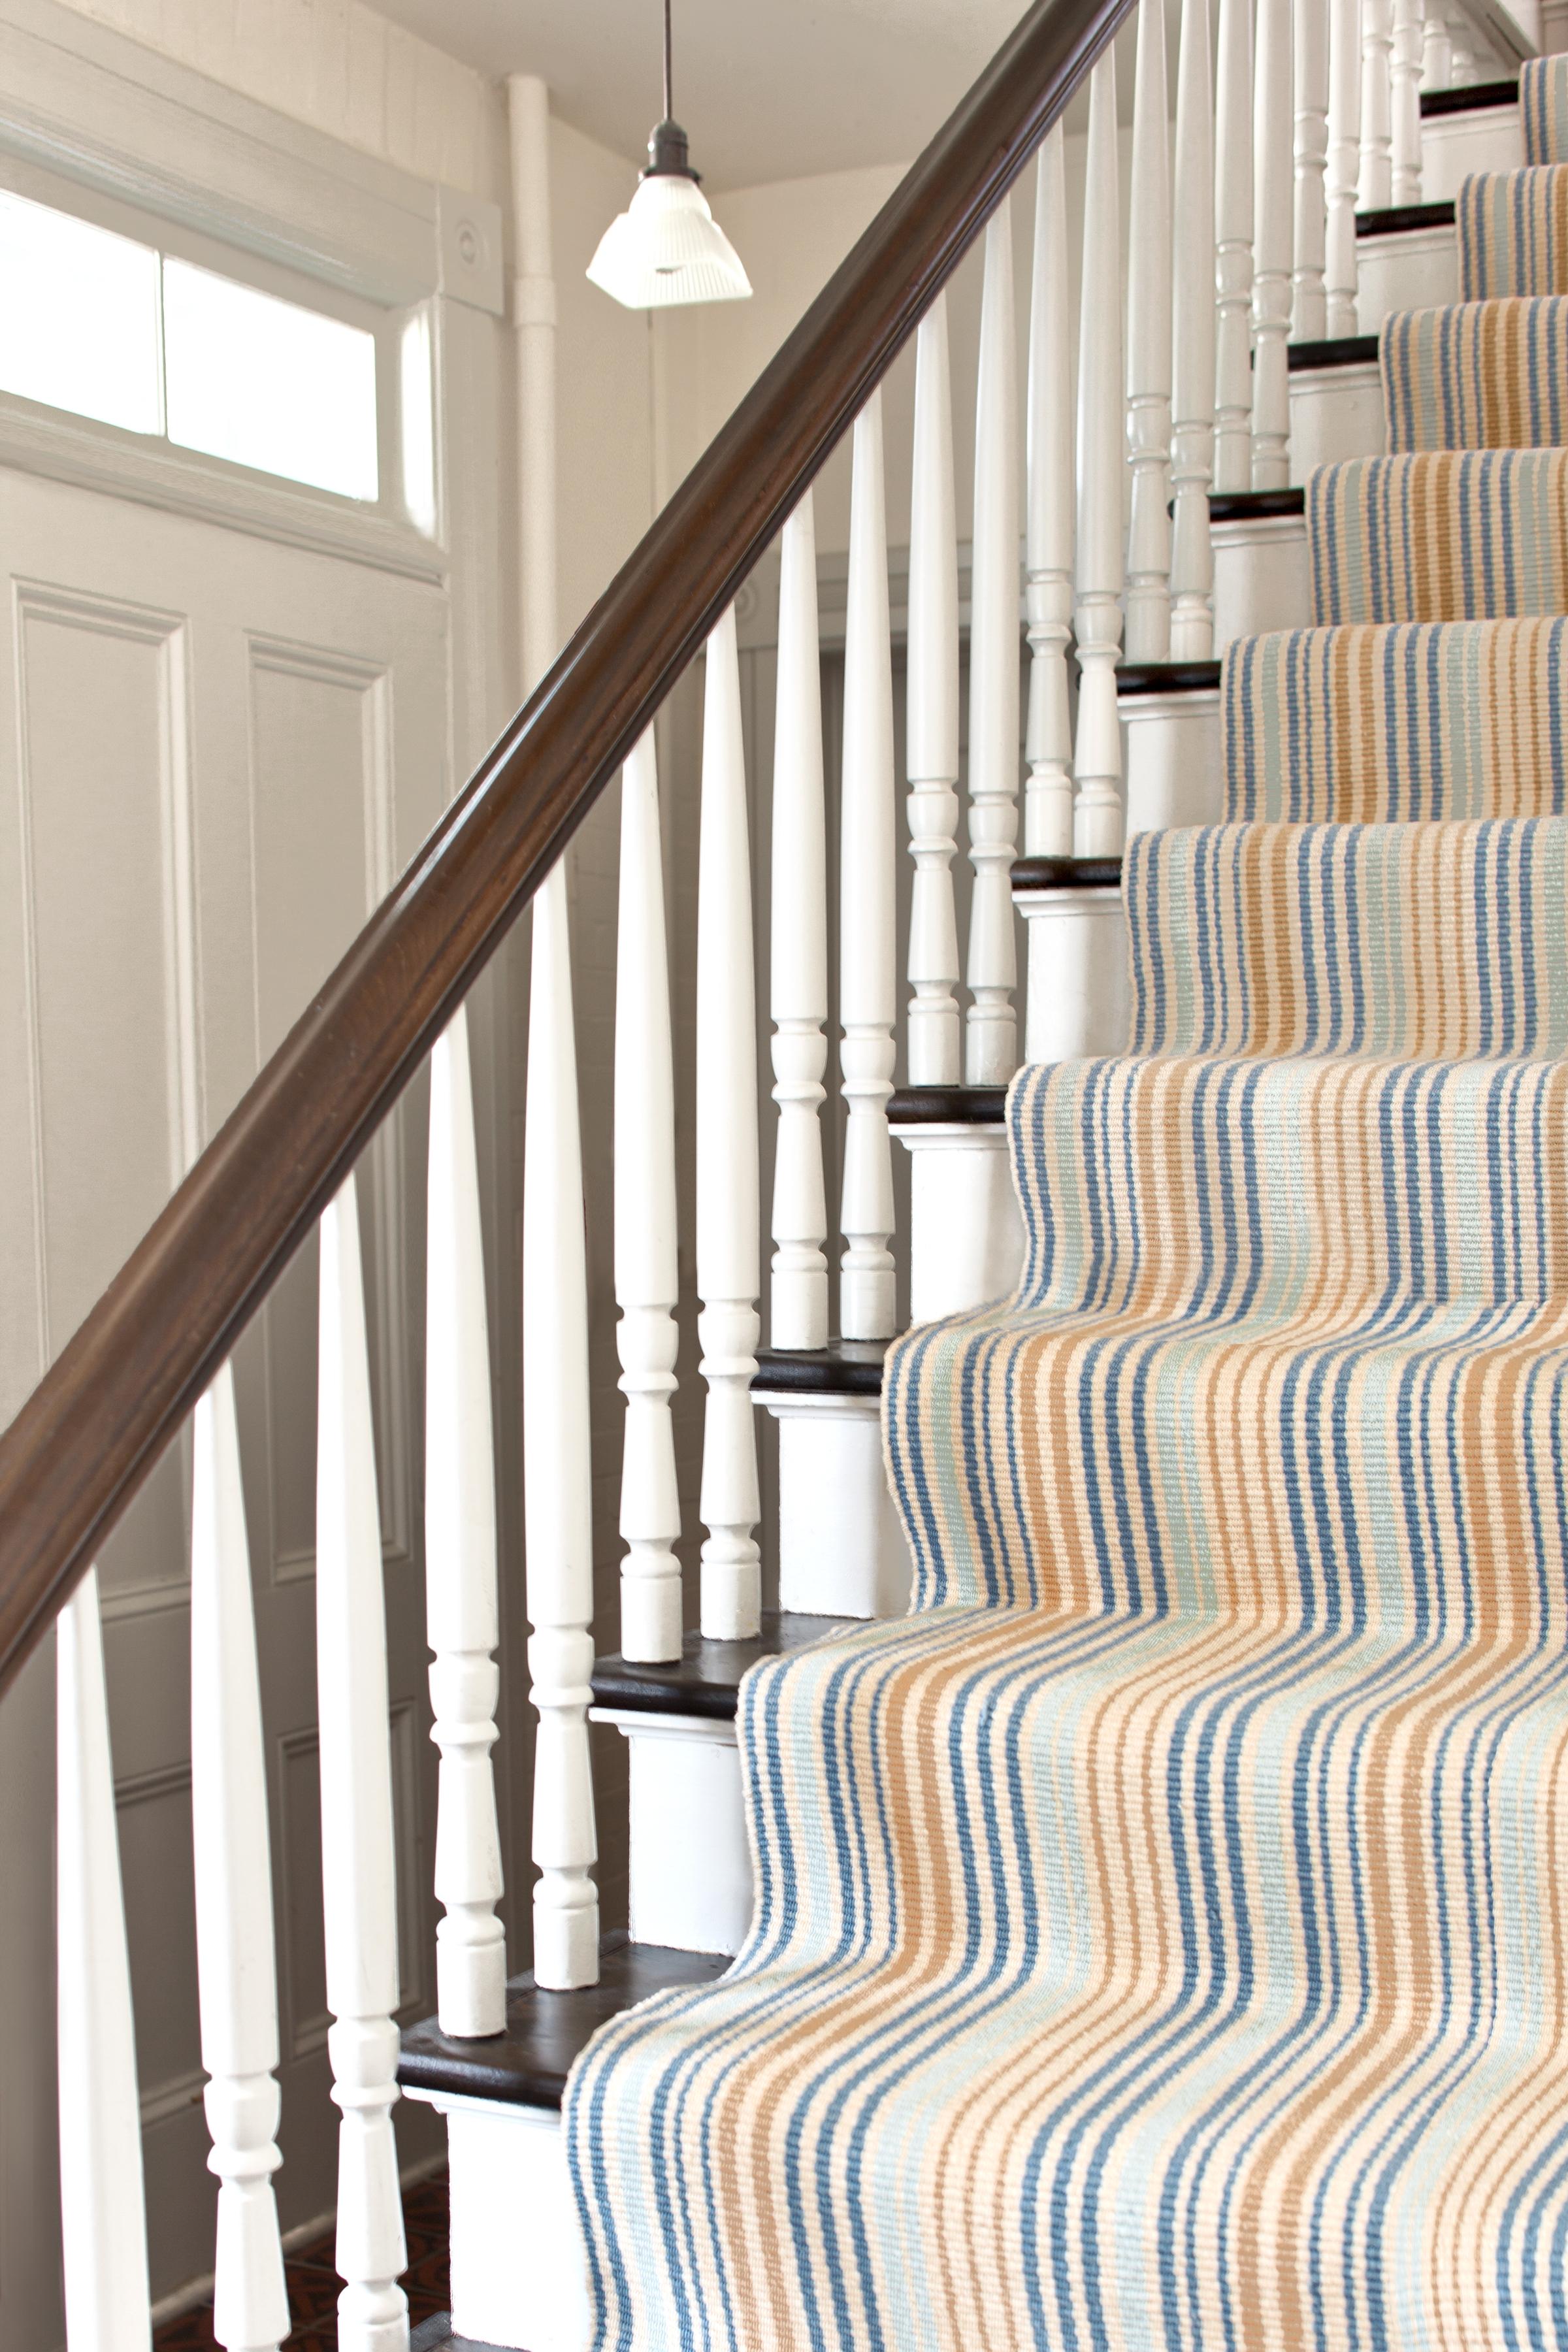 How To Choose A Runner Rug For A Stair Installation Intended For Rugs For Staircases (Image 11 of 15)